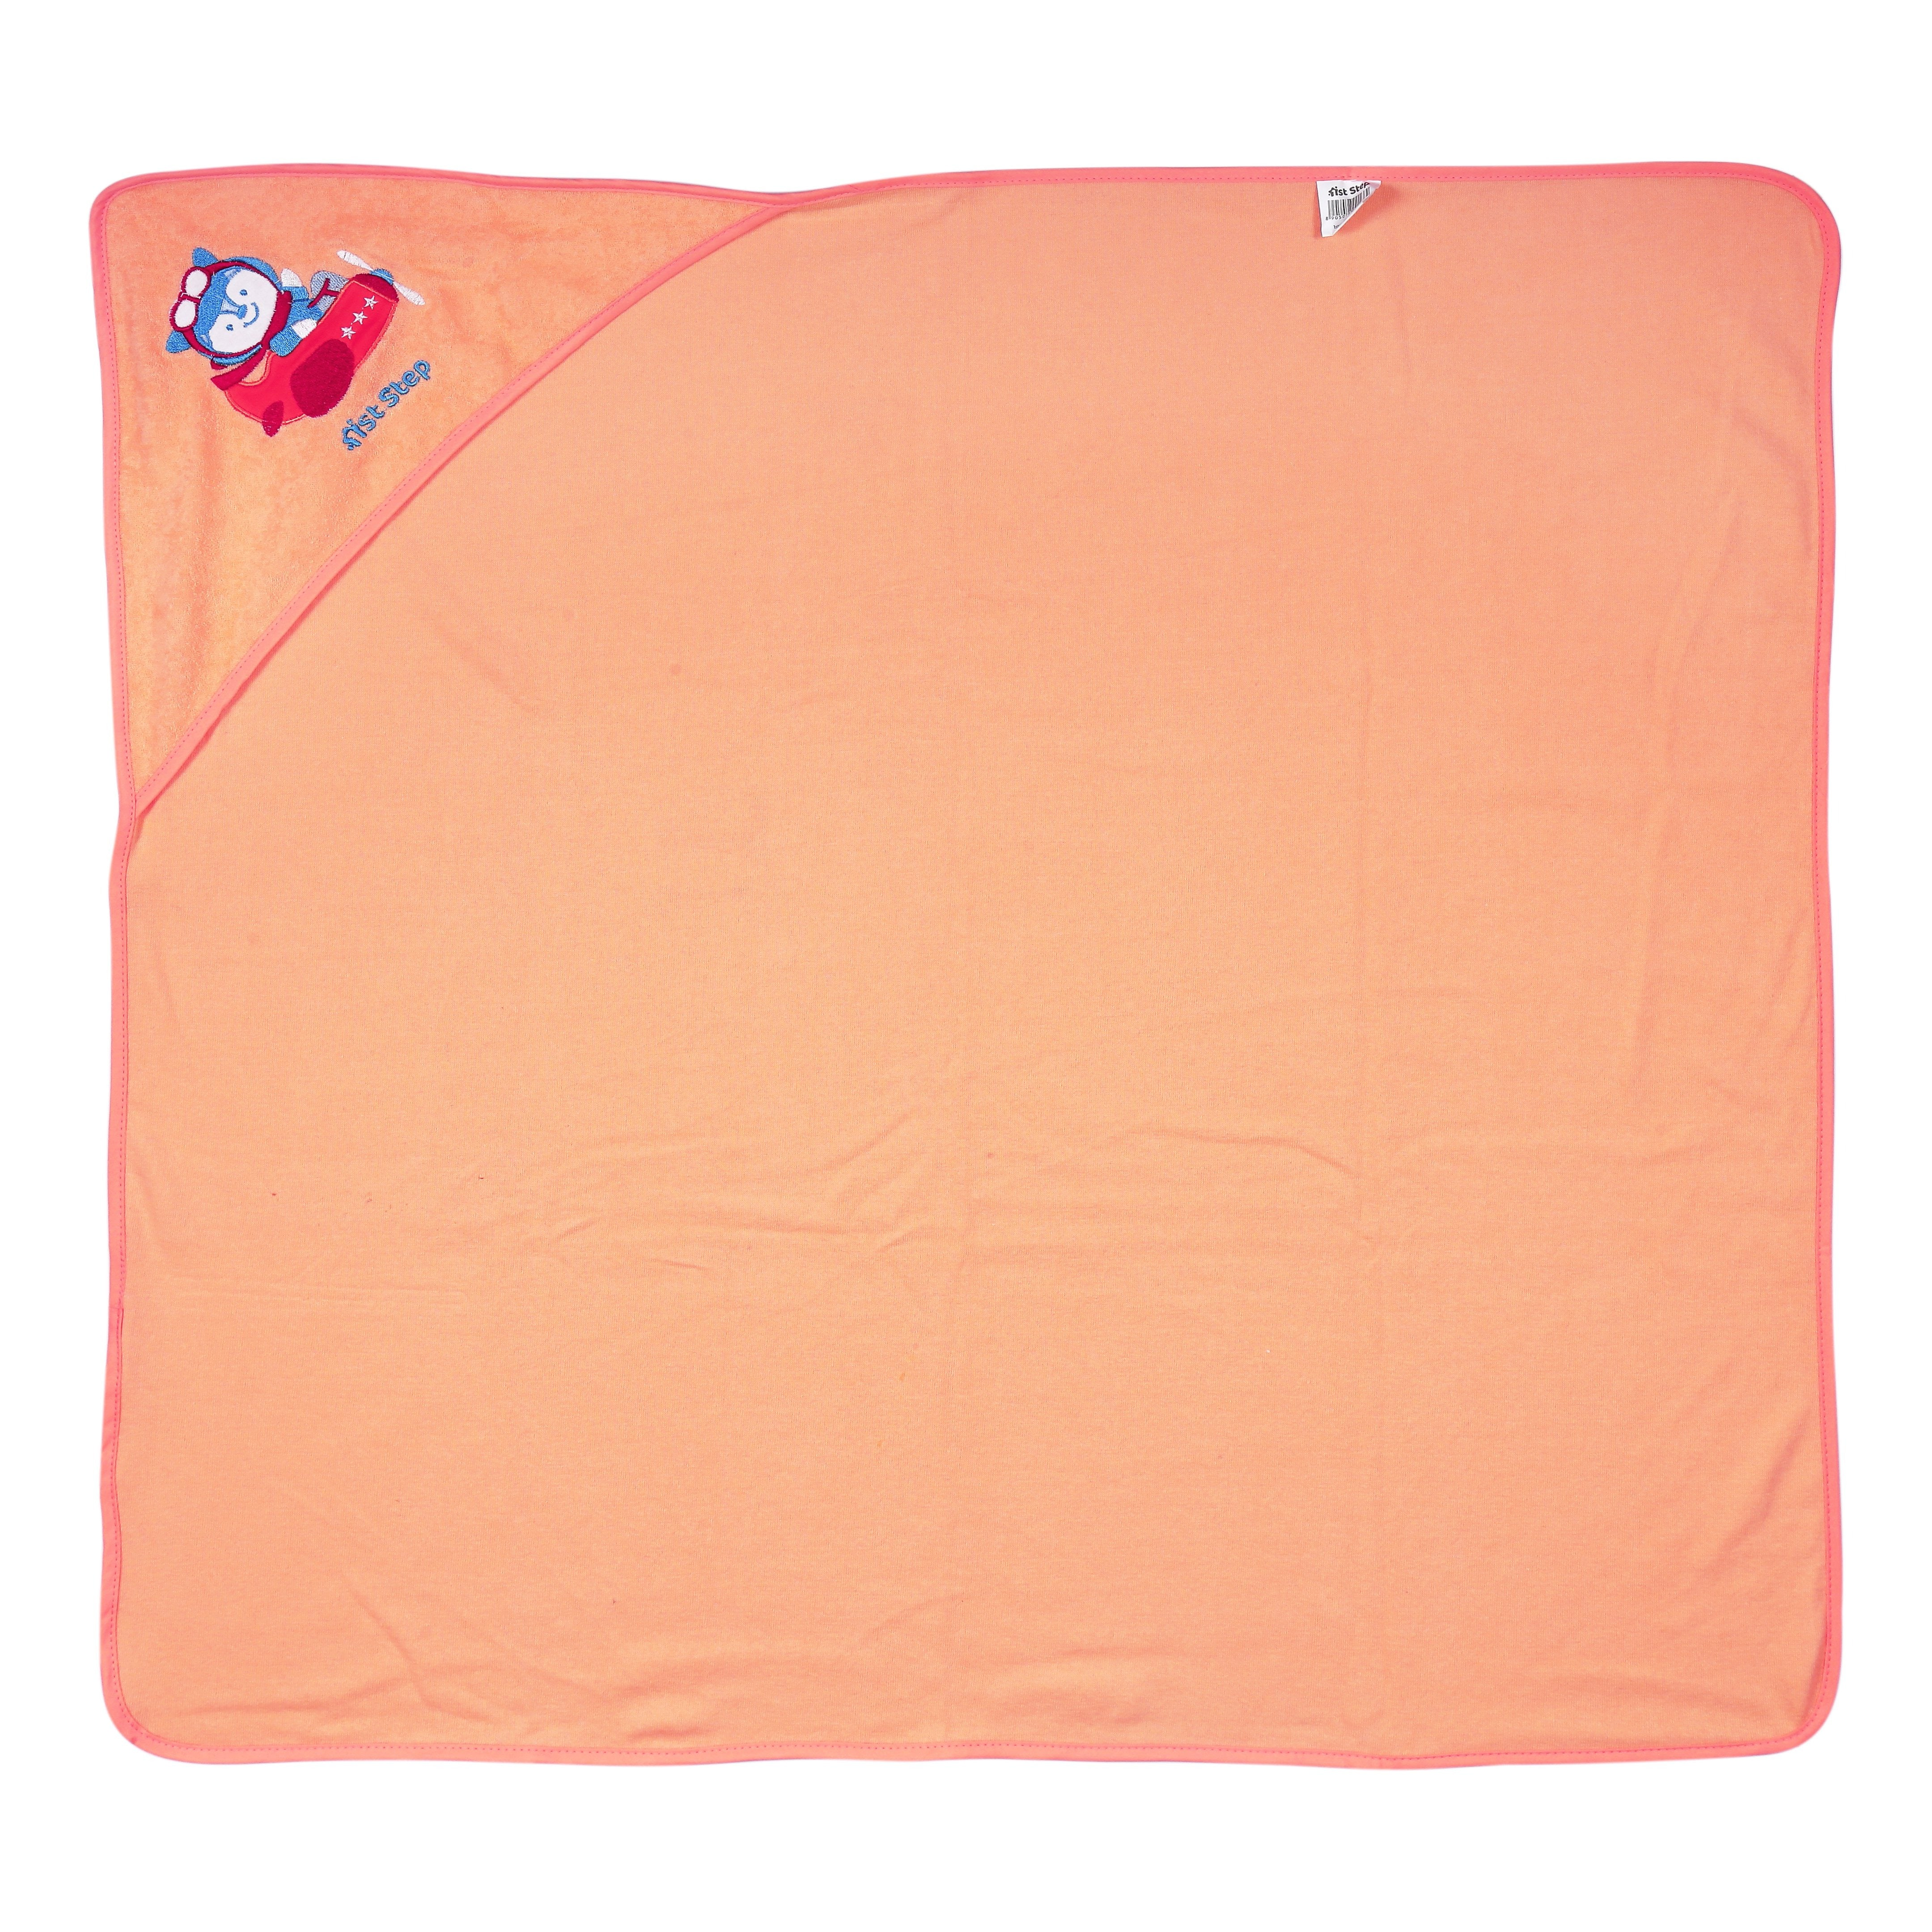 1st Step Terry Cotton Soft, Absorbant, Breathable, Skin Friendly, Printed, Hooded Baby Bath Towel/Bath Robe/Wrapper (Orange)